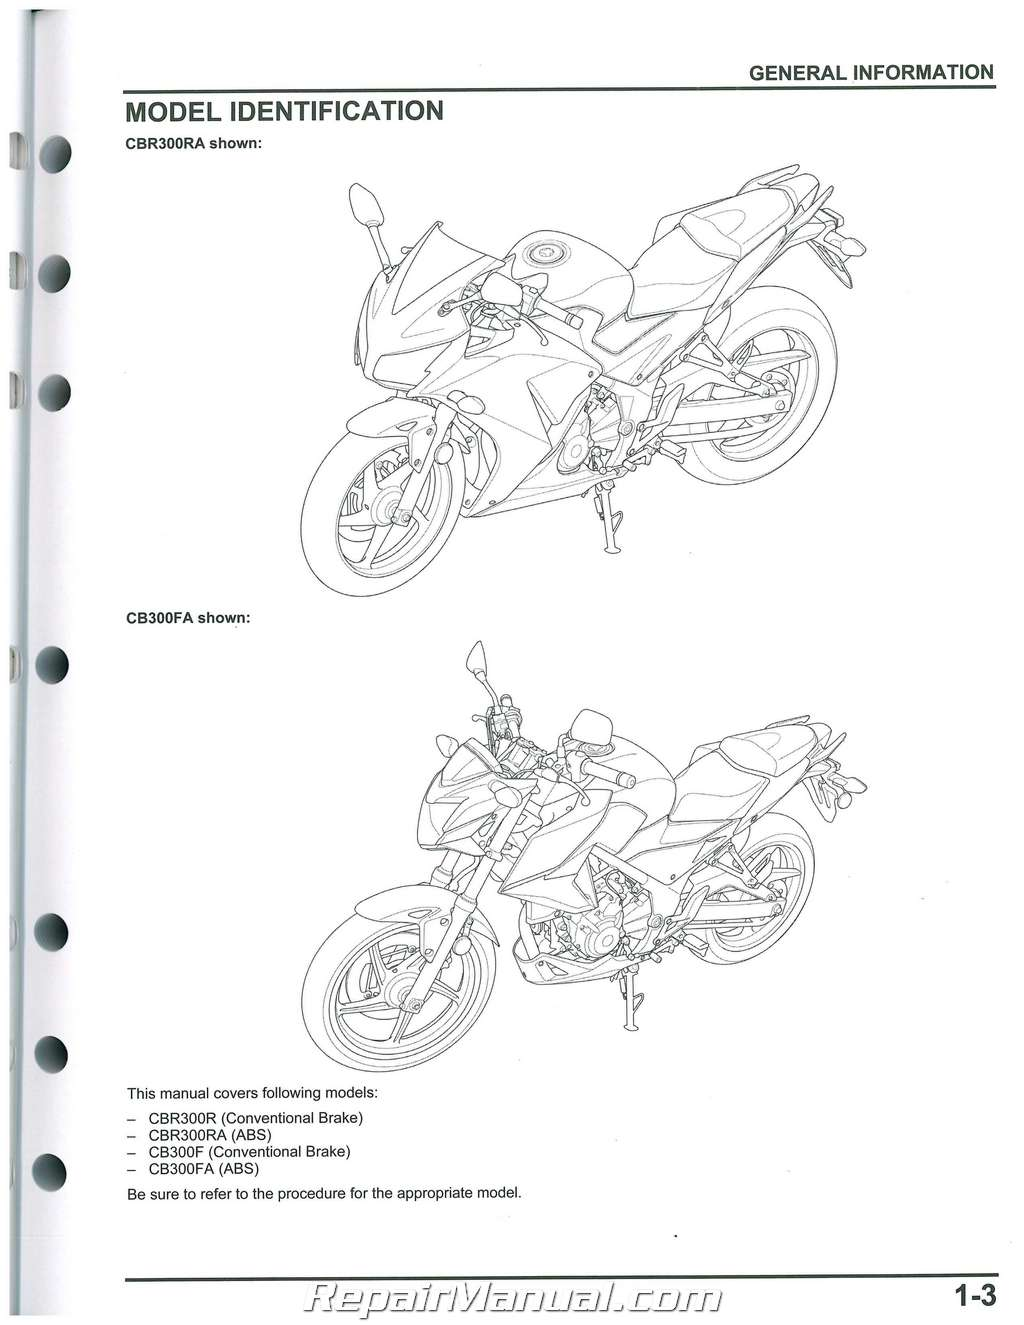 Used 2015 2016 Honda Cbr300r Service Manual Motorcycle